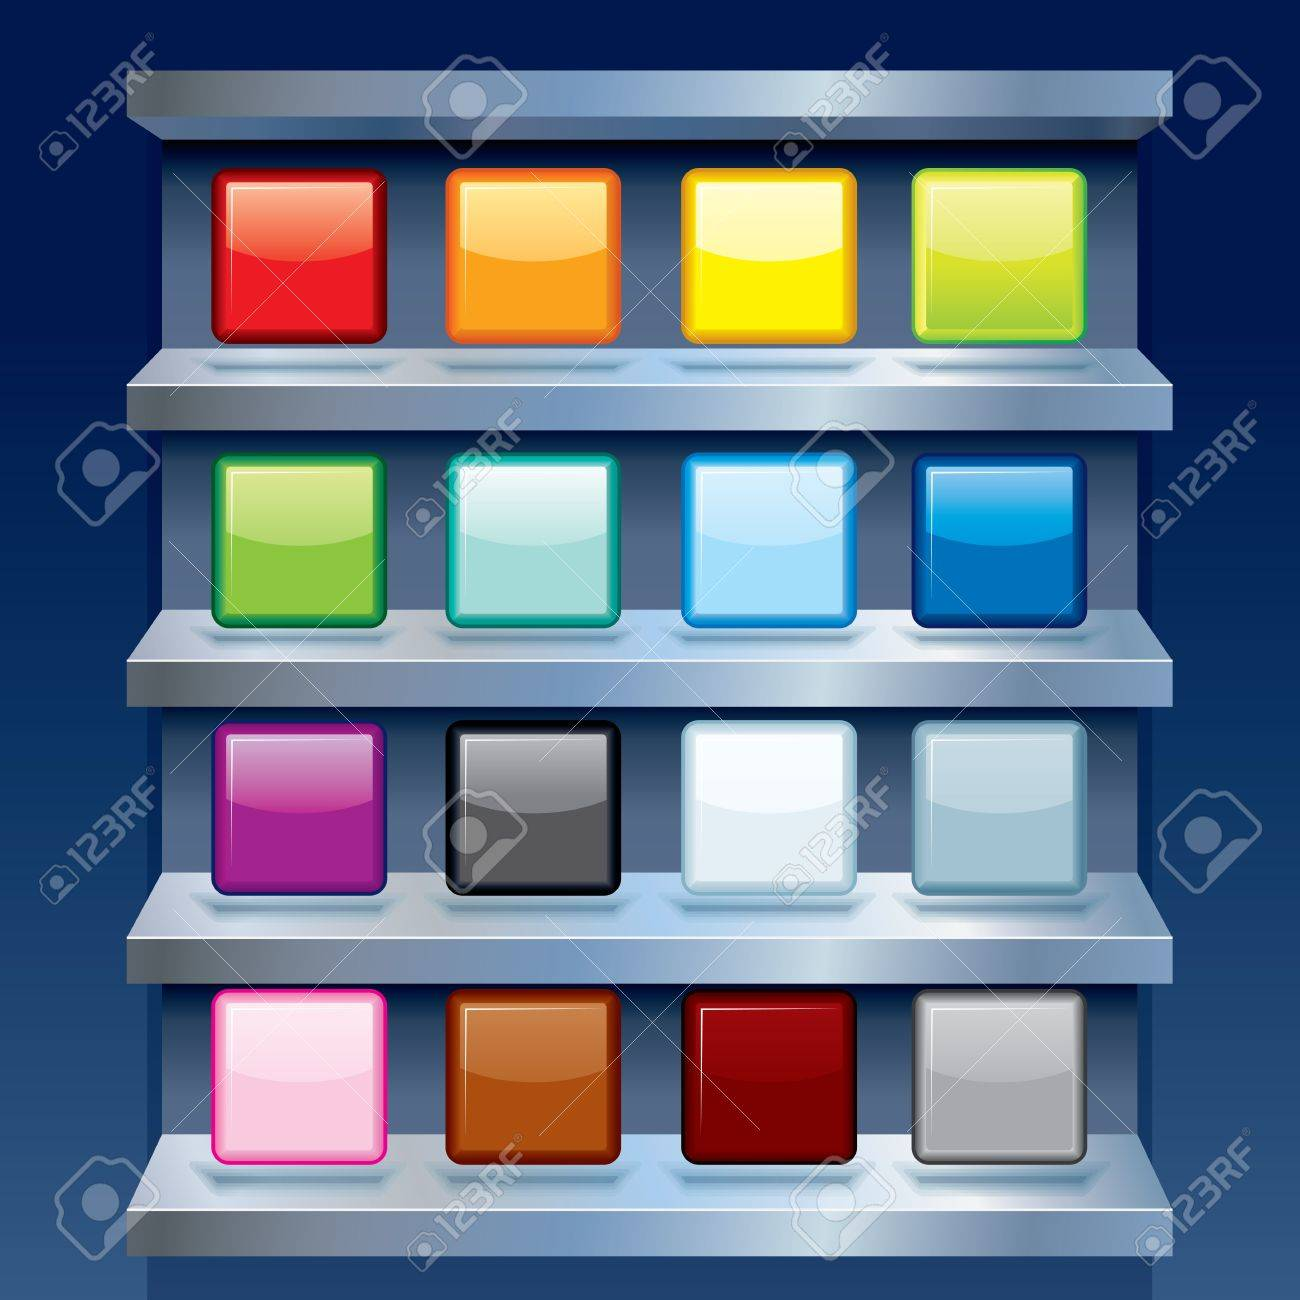 Clean Colorful Apps Icons on Metal Shelf. Stock Vector - 21067729